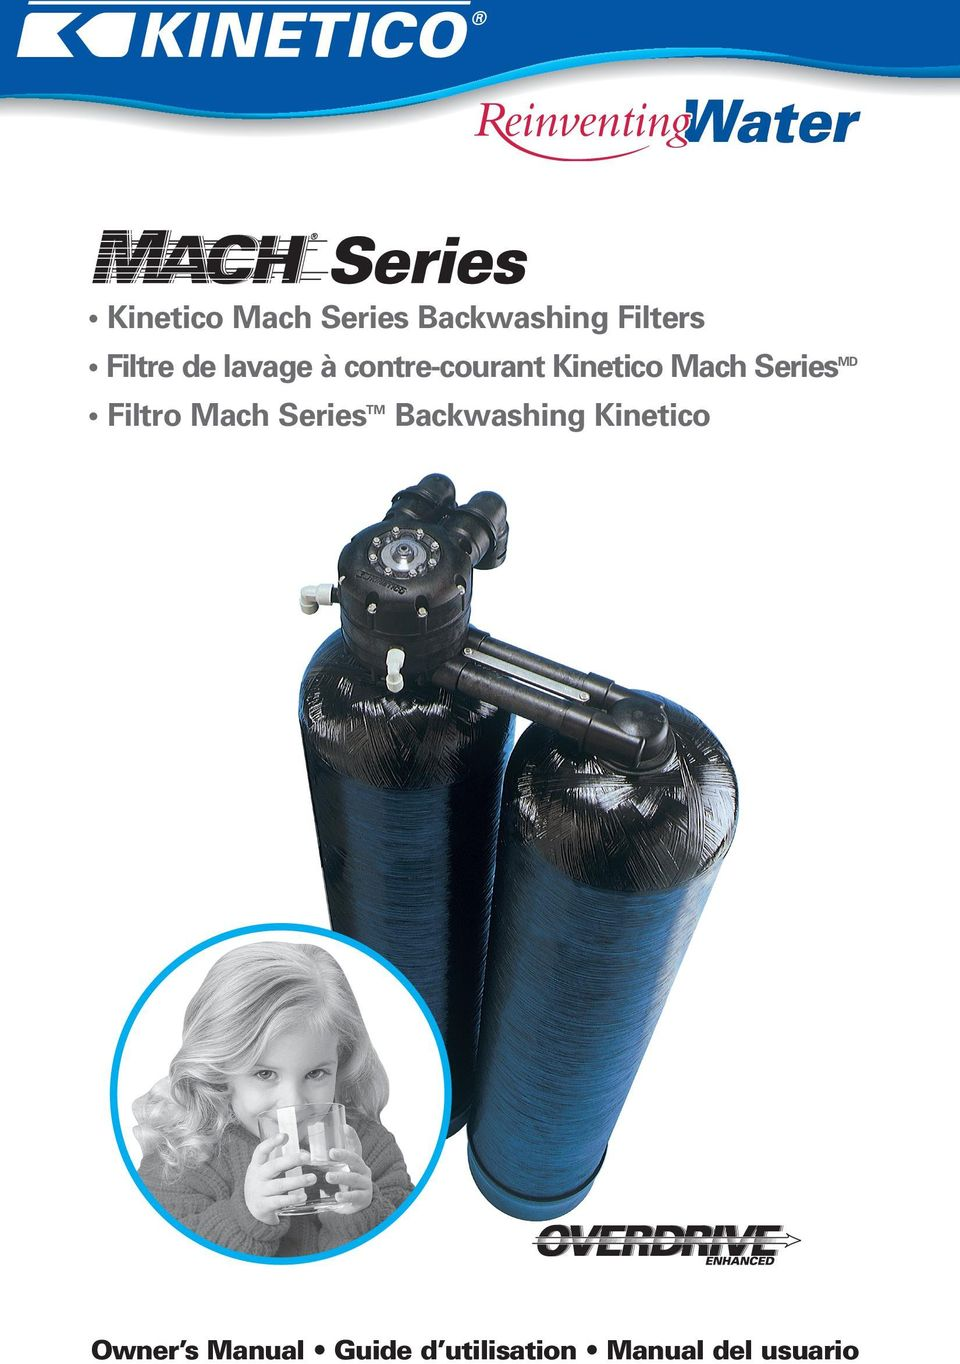 SeriesMD Filtro Mach SeriesTM Backwashing